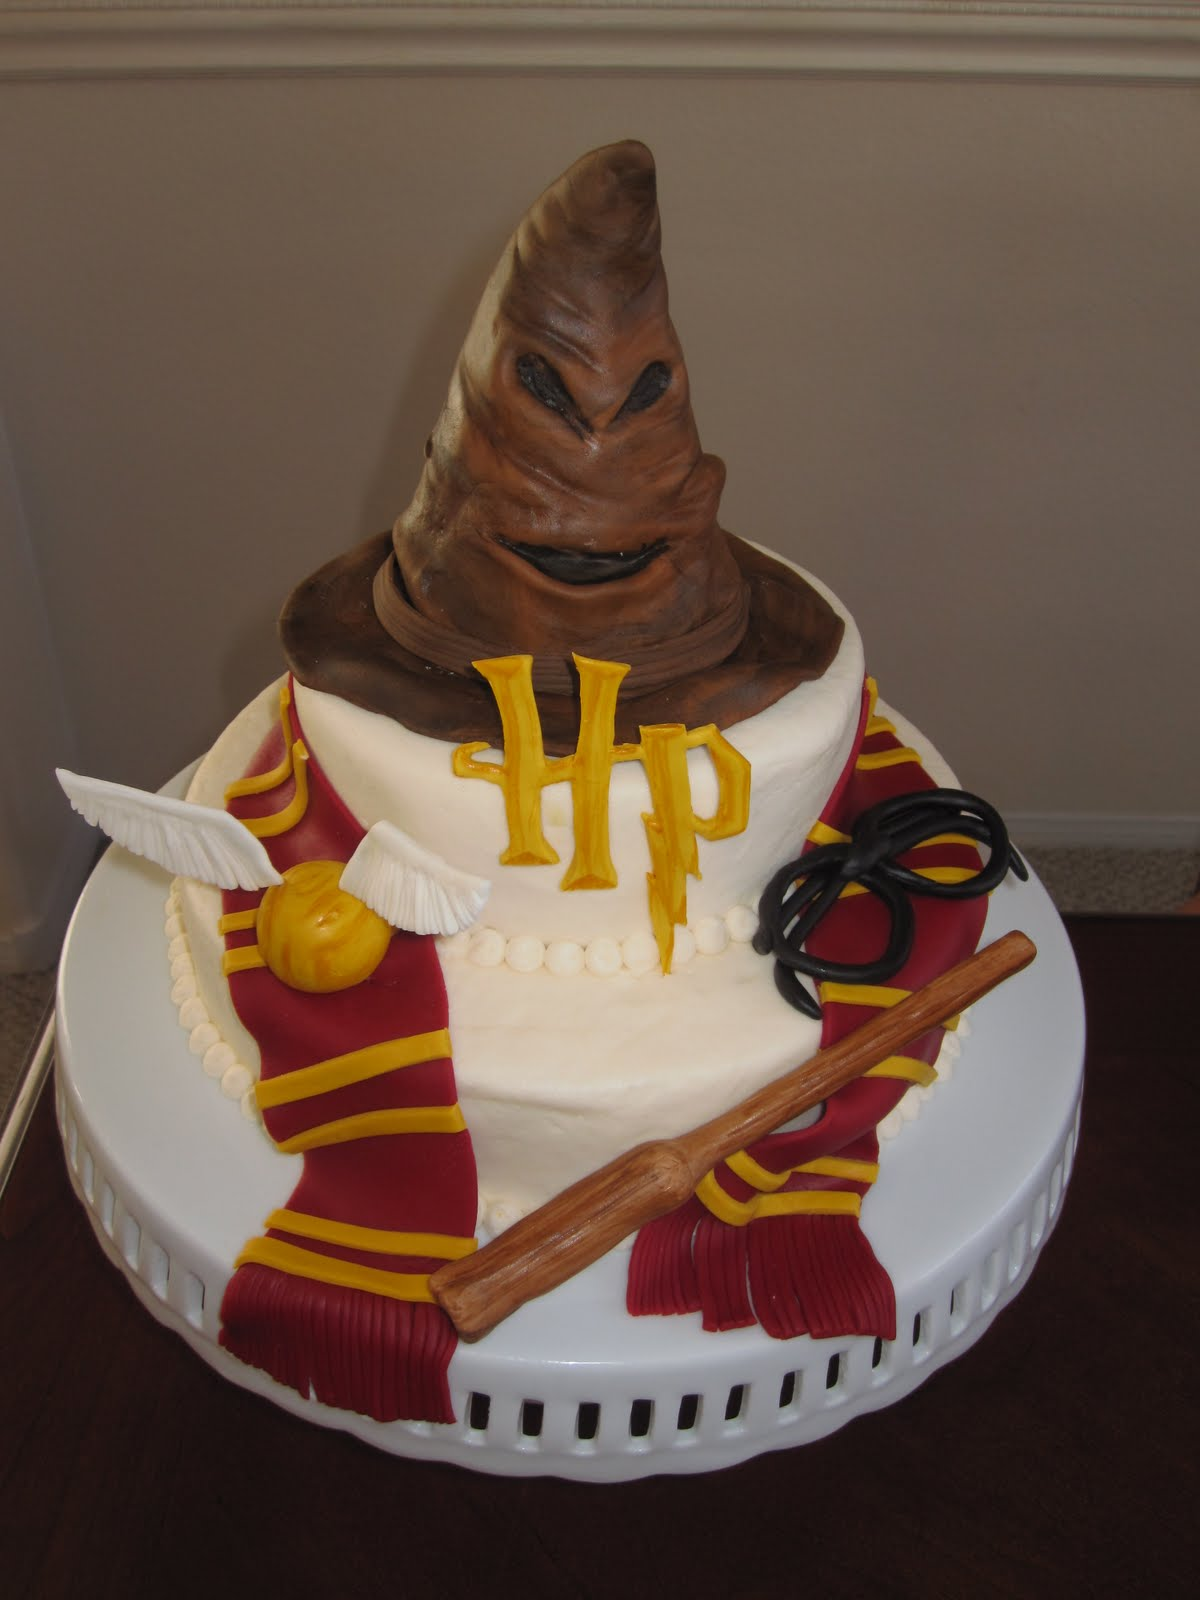 Enjoyable Harry Potter Cakes Decoration Ideas Little Birthday Cakes Personalised Birthday Cards Paralily Jamesorg